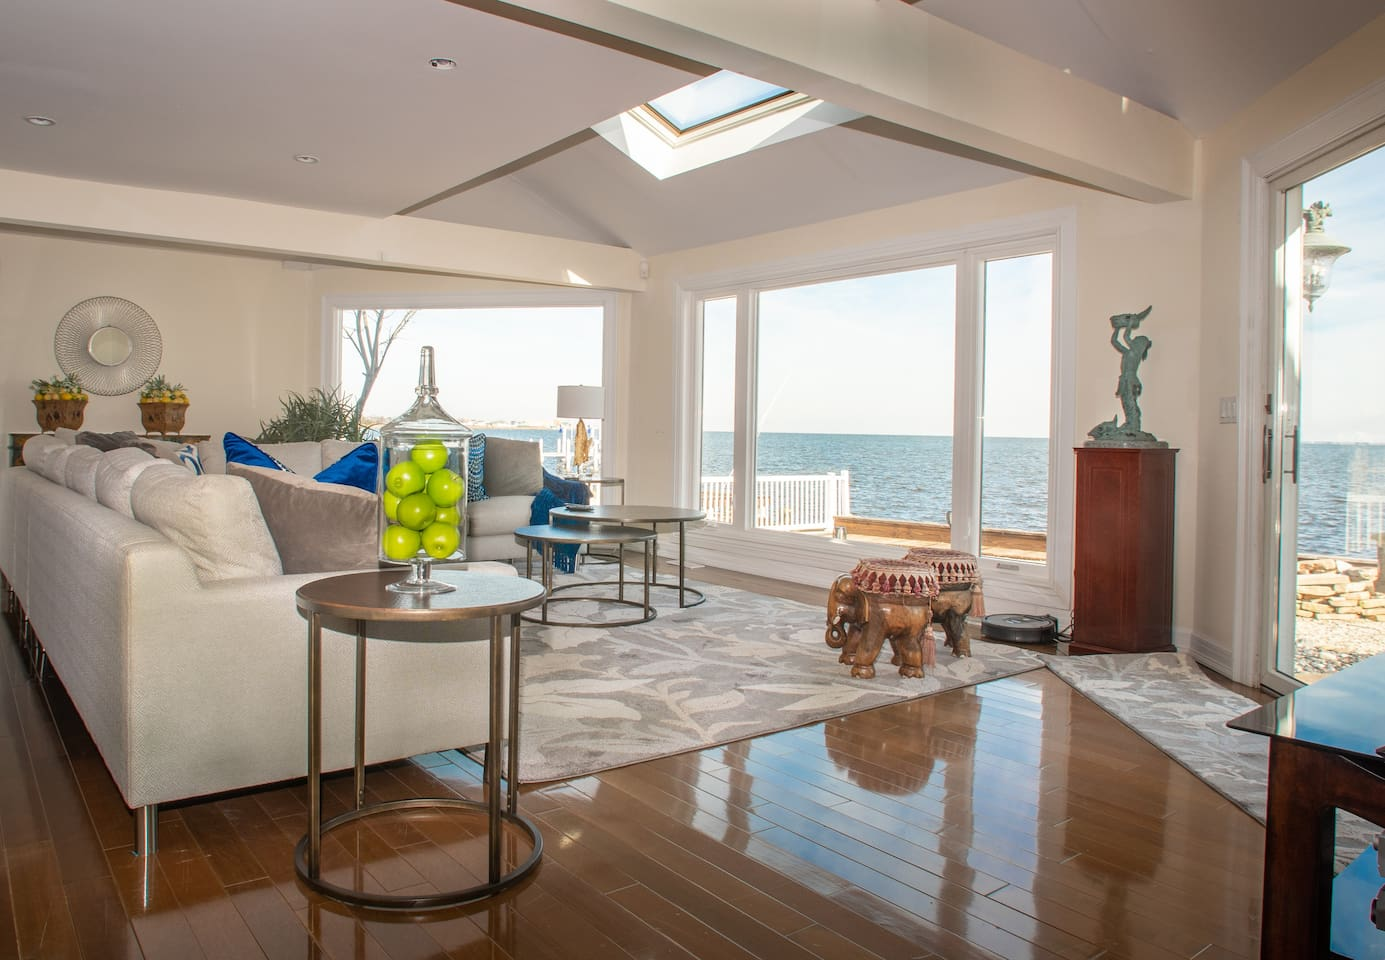 Family room facing LBI The Family Room is only 32 ft from the Bay!  You get beautiful views of the Bay from all angles.  Excellent for watching Sunrise or Sunset.  Sliding glass door opens to the back yard and patio.